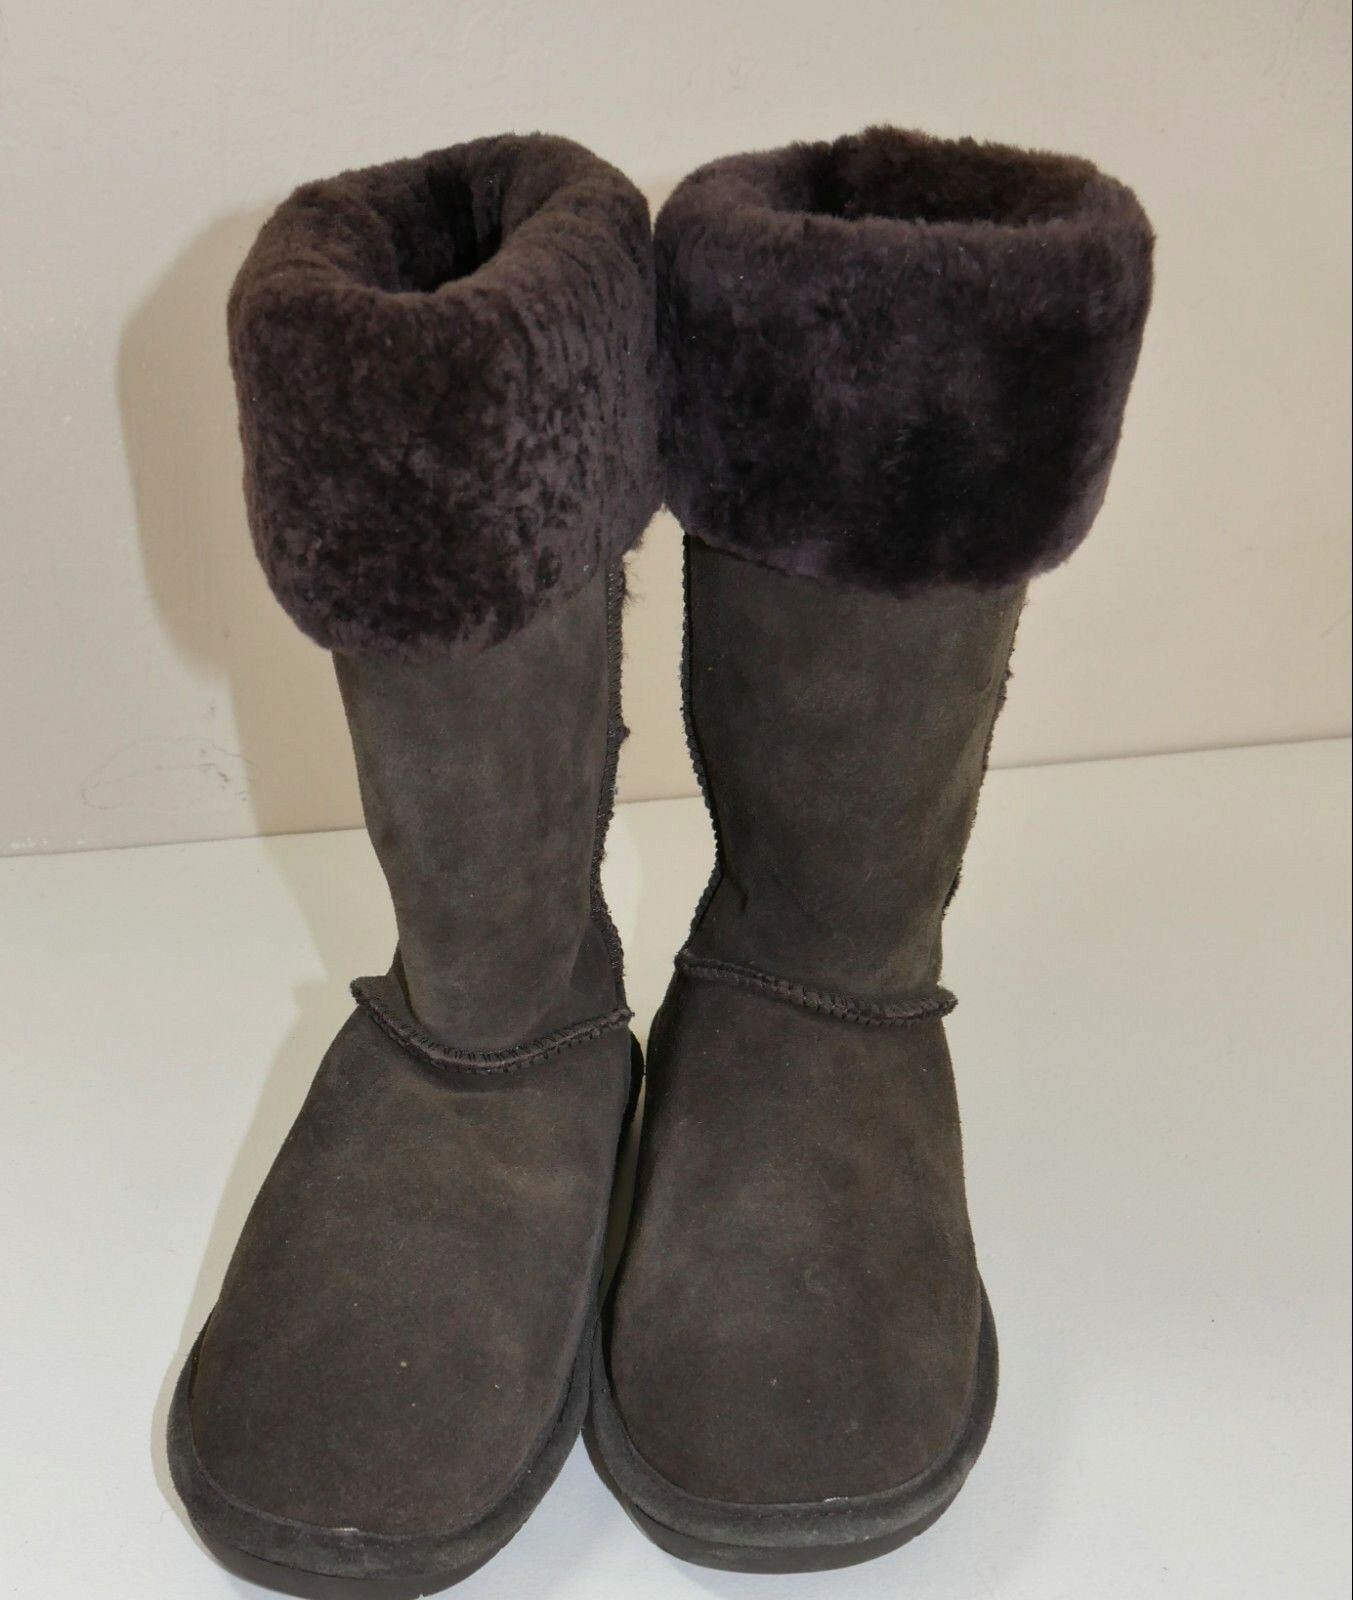 Bear Paw Womens  Brown Tall Leather Shearling Trim Cuffed Boots  Size 10